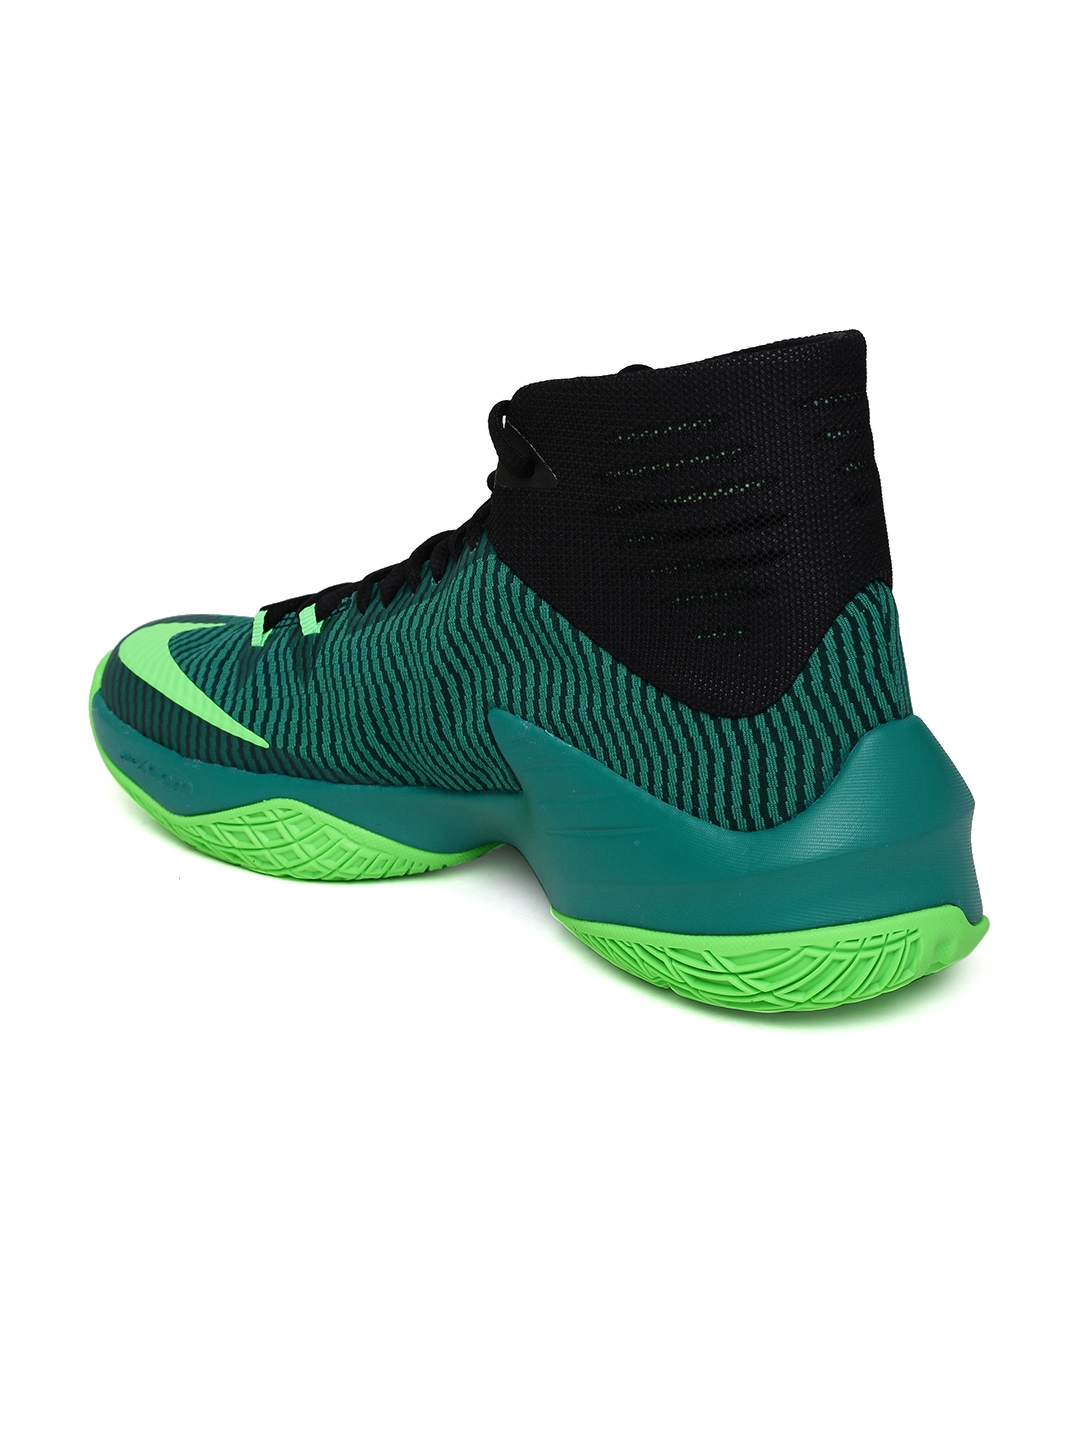 ... pink black hx4znxwr0l4izifnjngb buy nike men teal green black zoom  clear out basketball shoes nike z ...